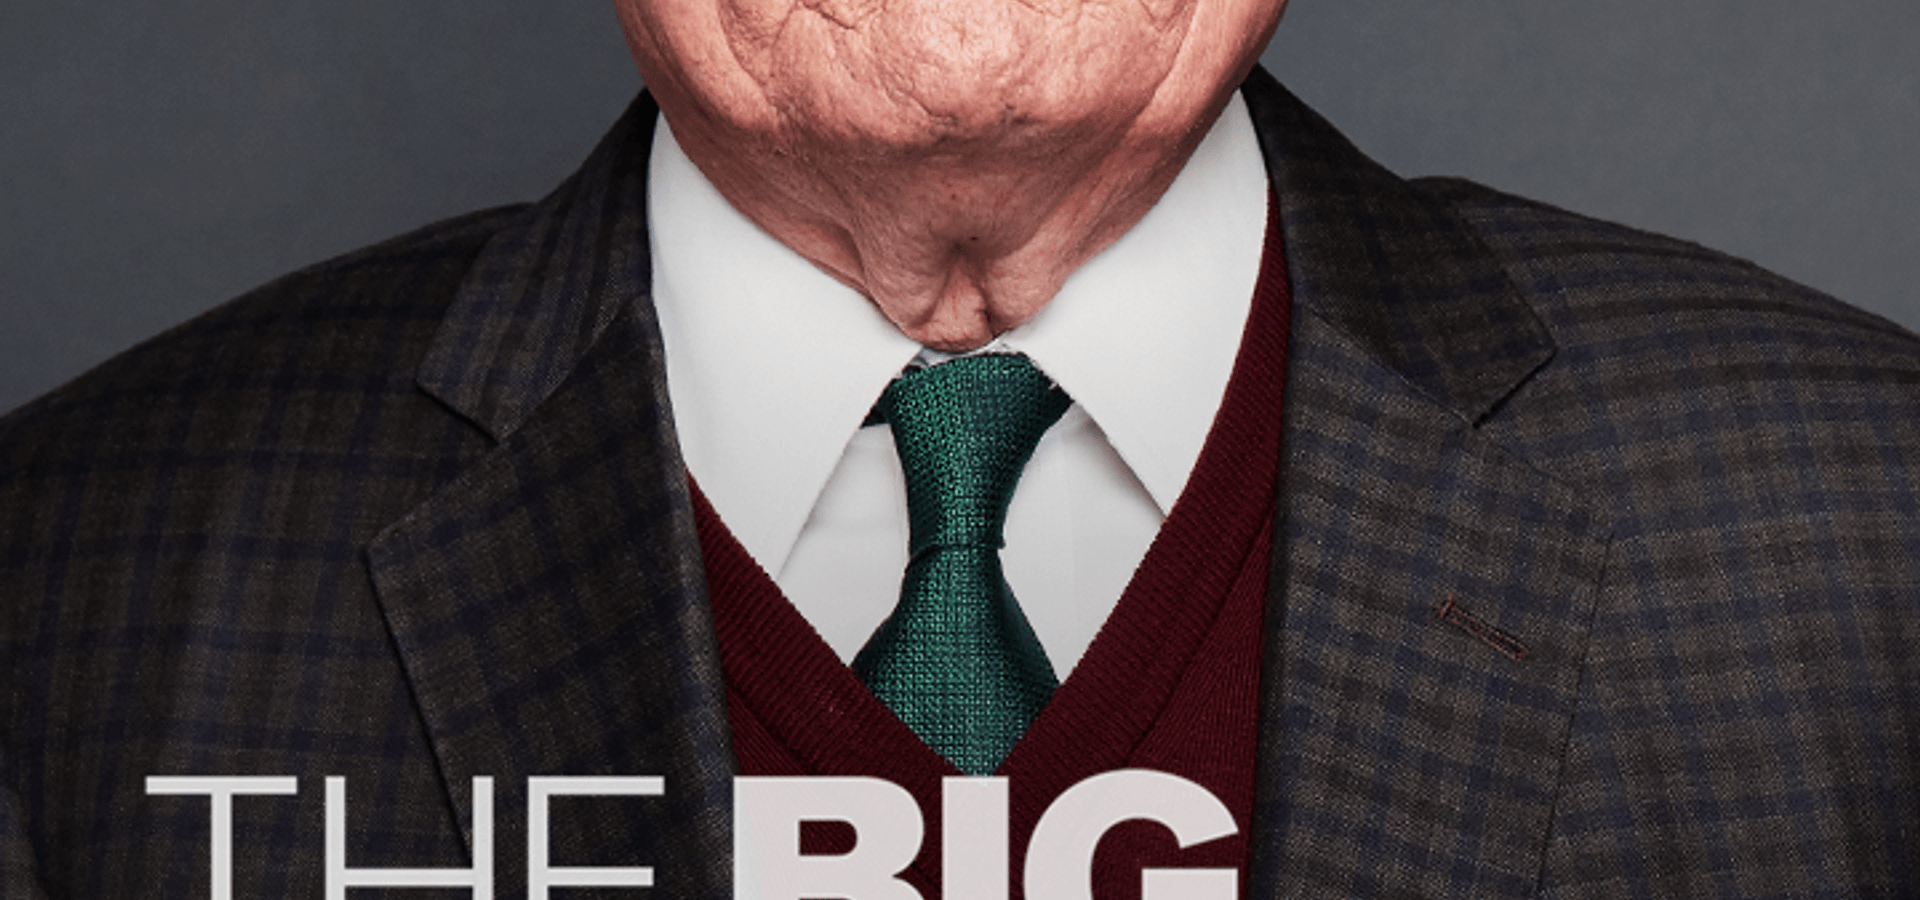 The Big Interview with Dan Rather Season 5